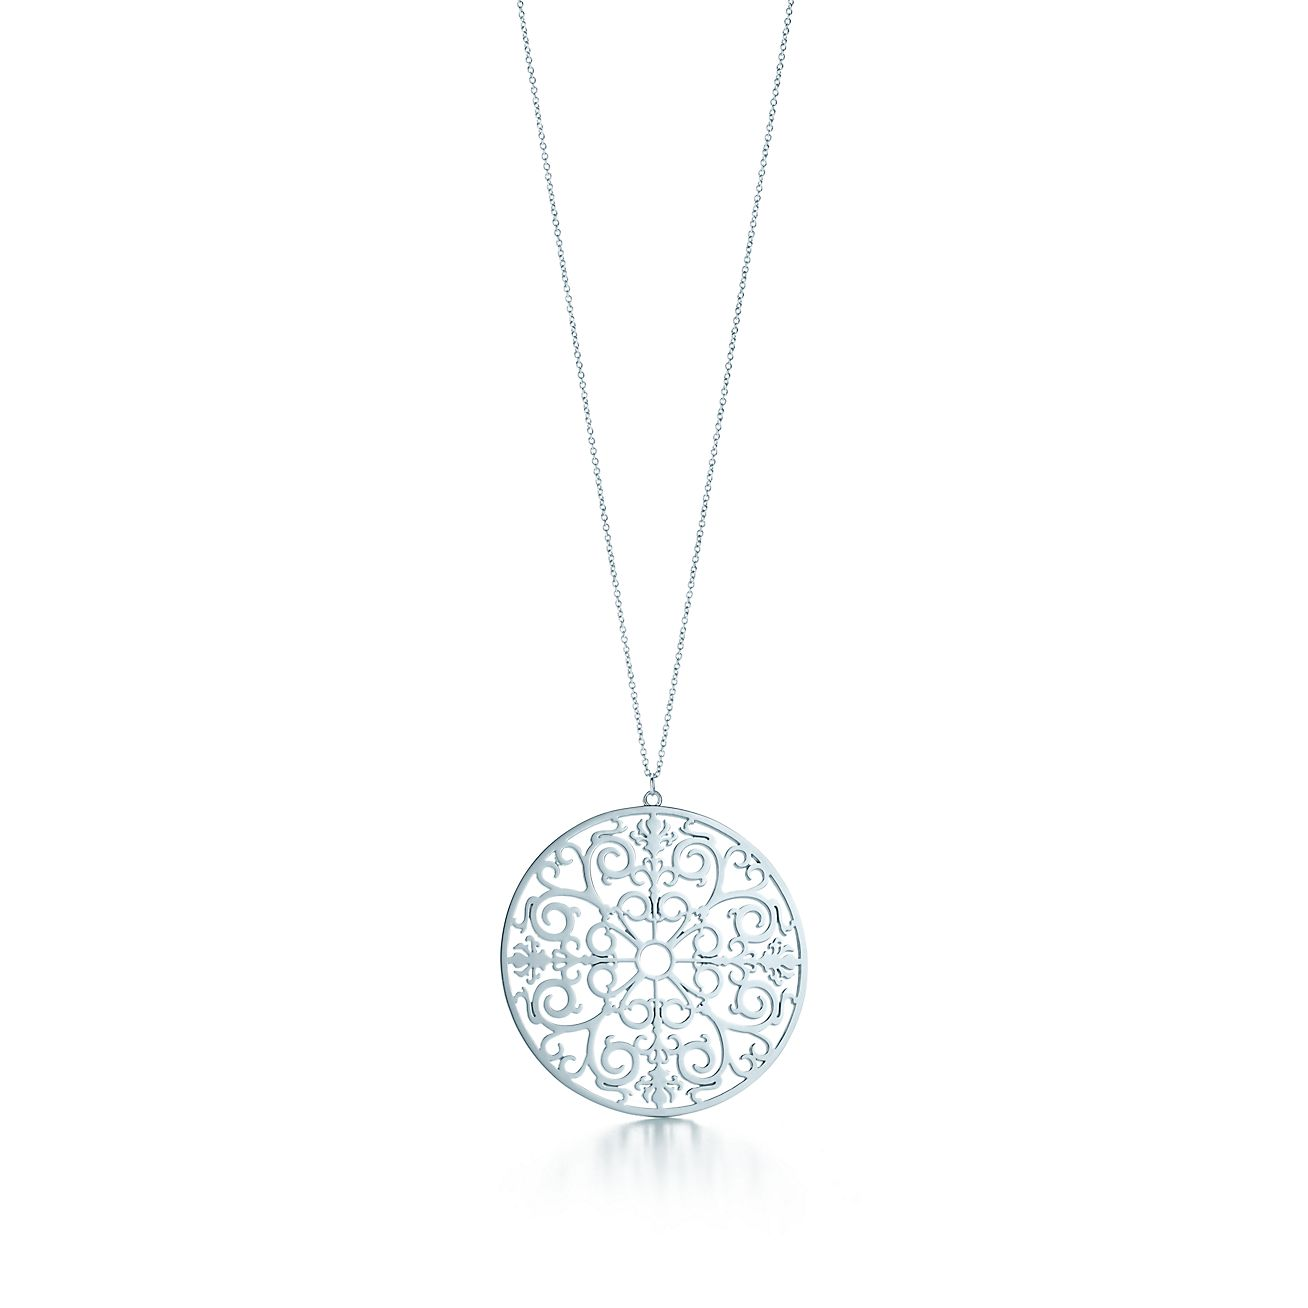 Tiffany enchant round pendant in sterling silver medium tiffany tiffany enchantround pendant audiocablefo